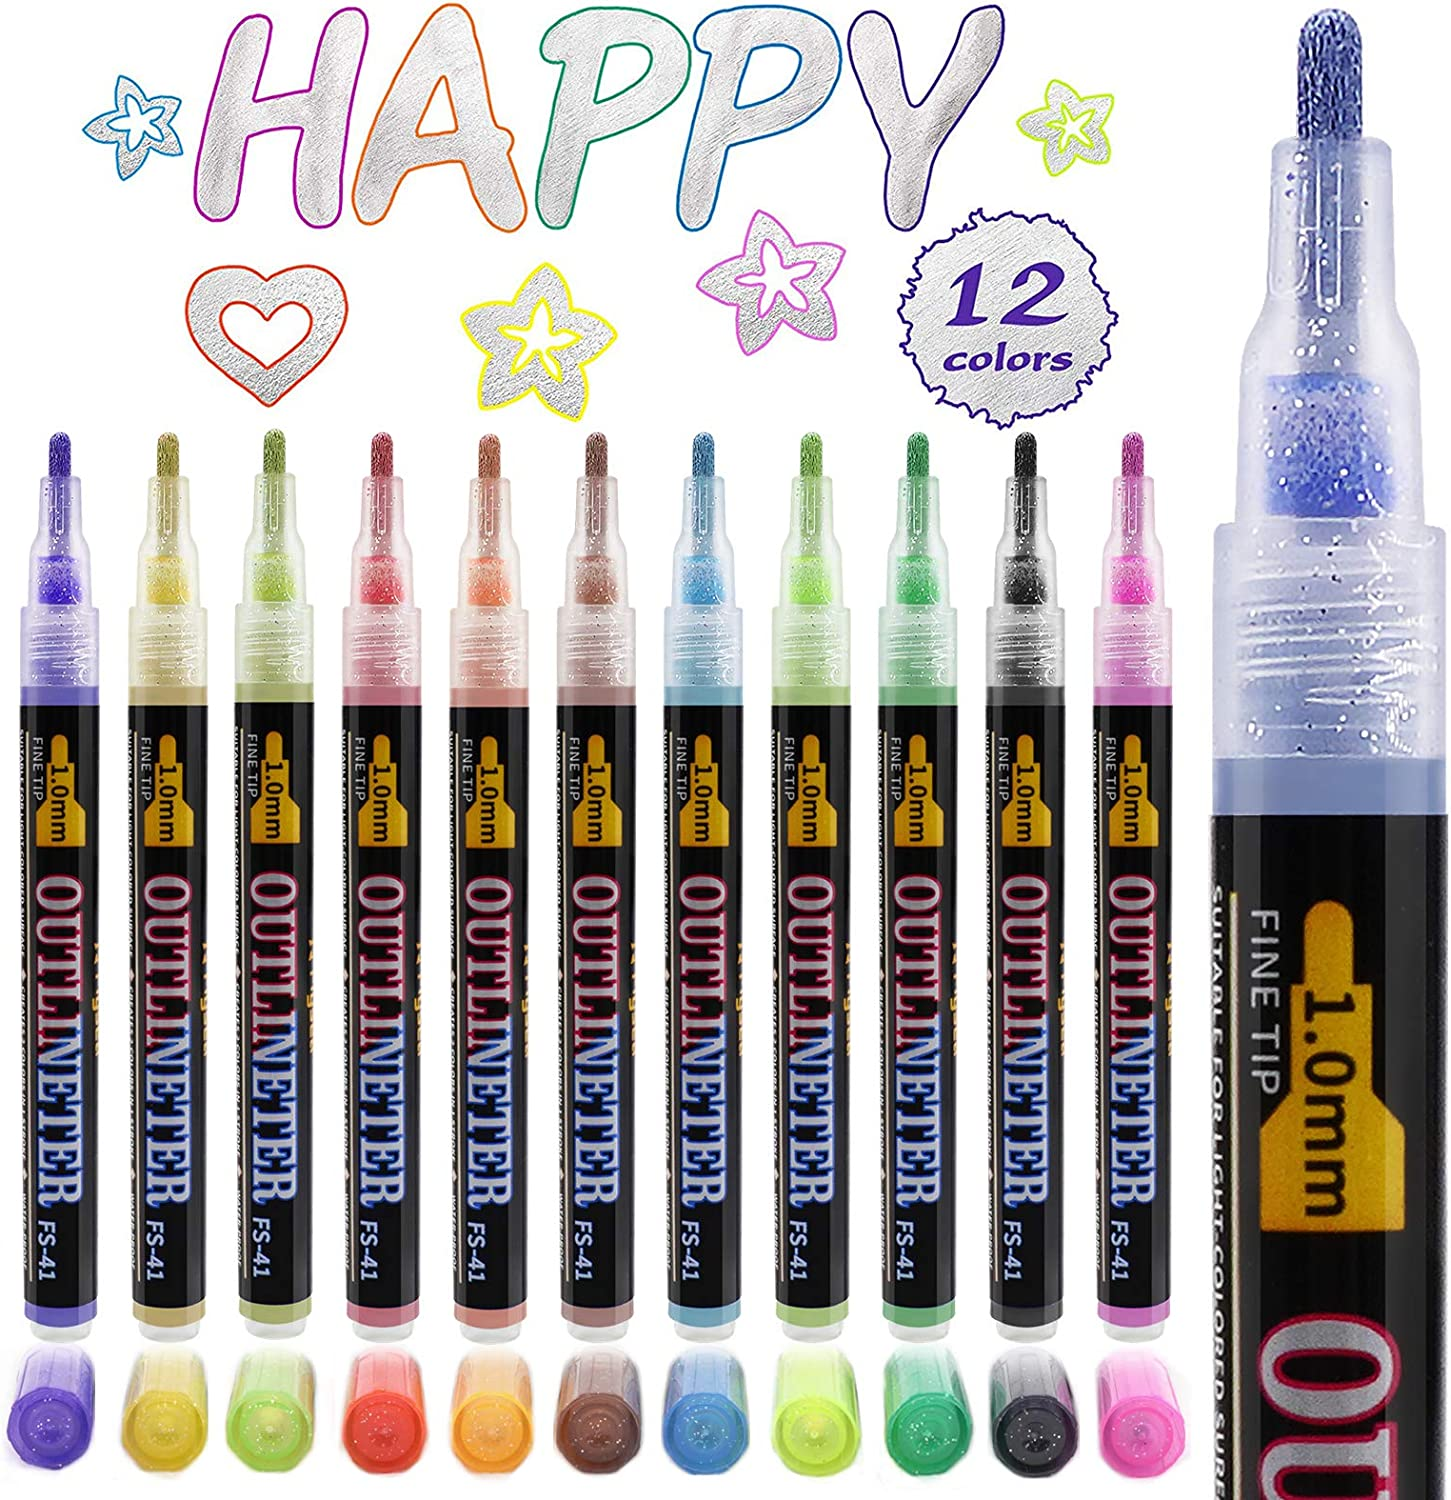 Double Line Outline Marker Pens,12 Colors Self Outline Metallic Markers Dazzle Shimmer Glitter Pens Permanent Painting for Easter Egg Decor, Gift Card, DIY Photo Album, Scrapbook Crafts, Wood, Glass